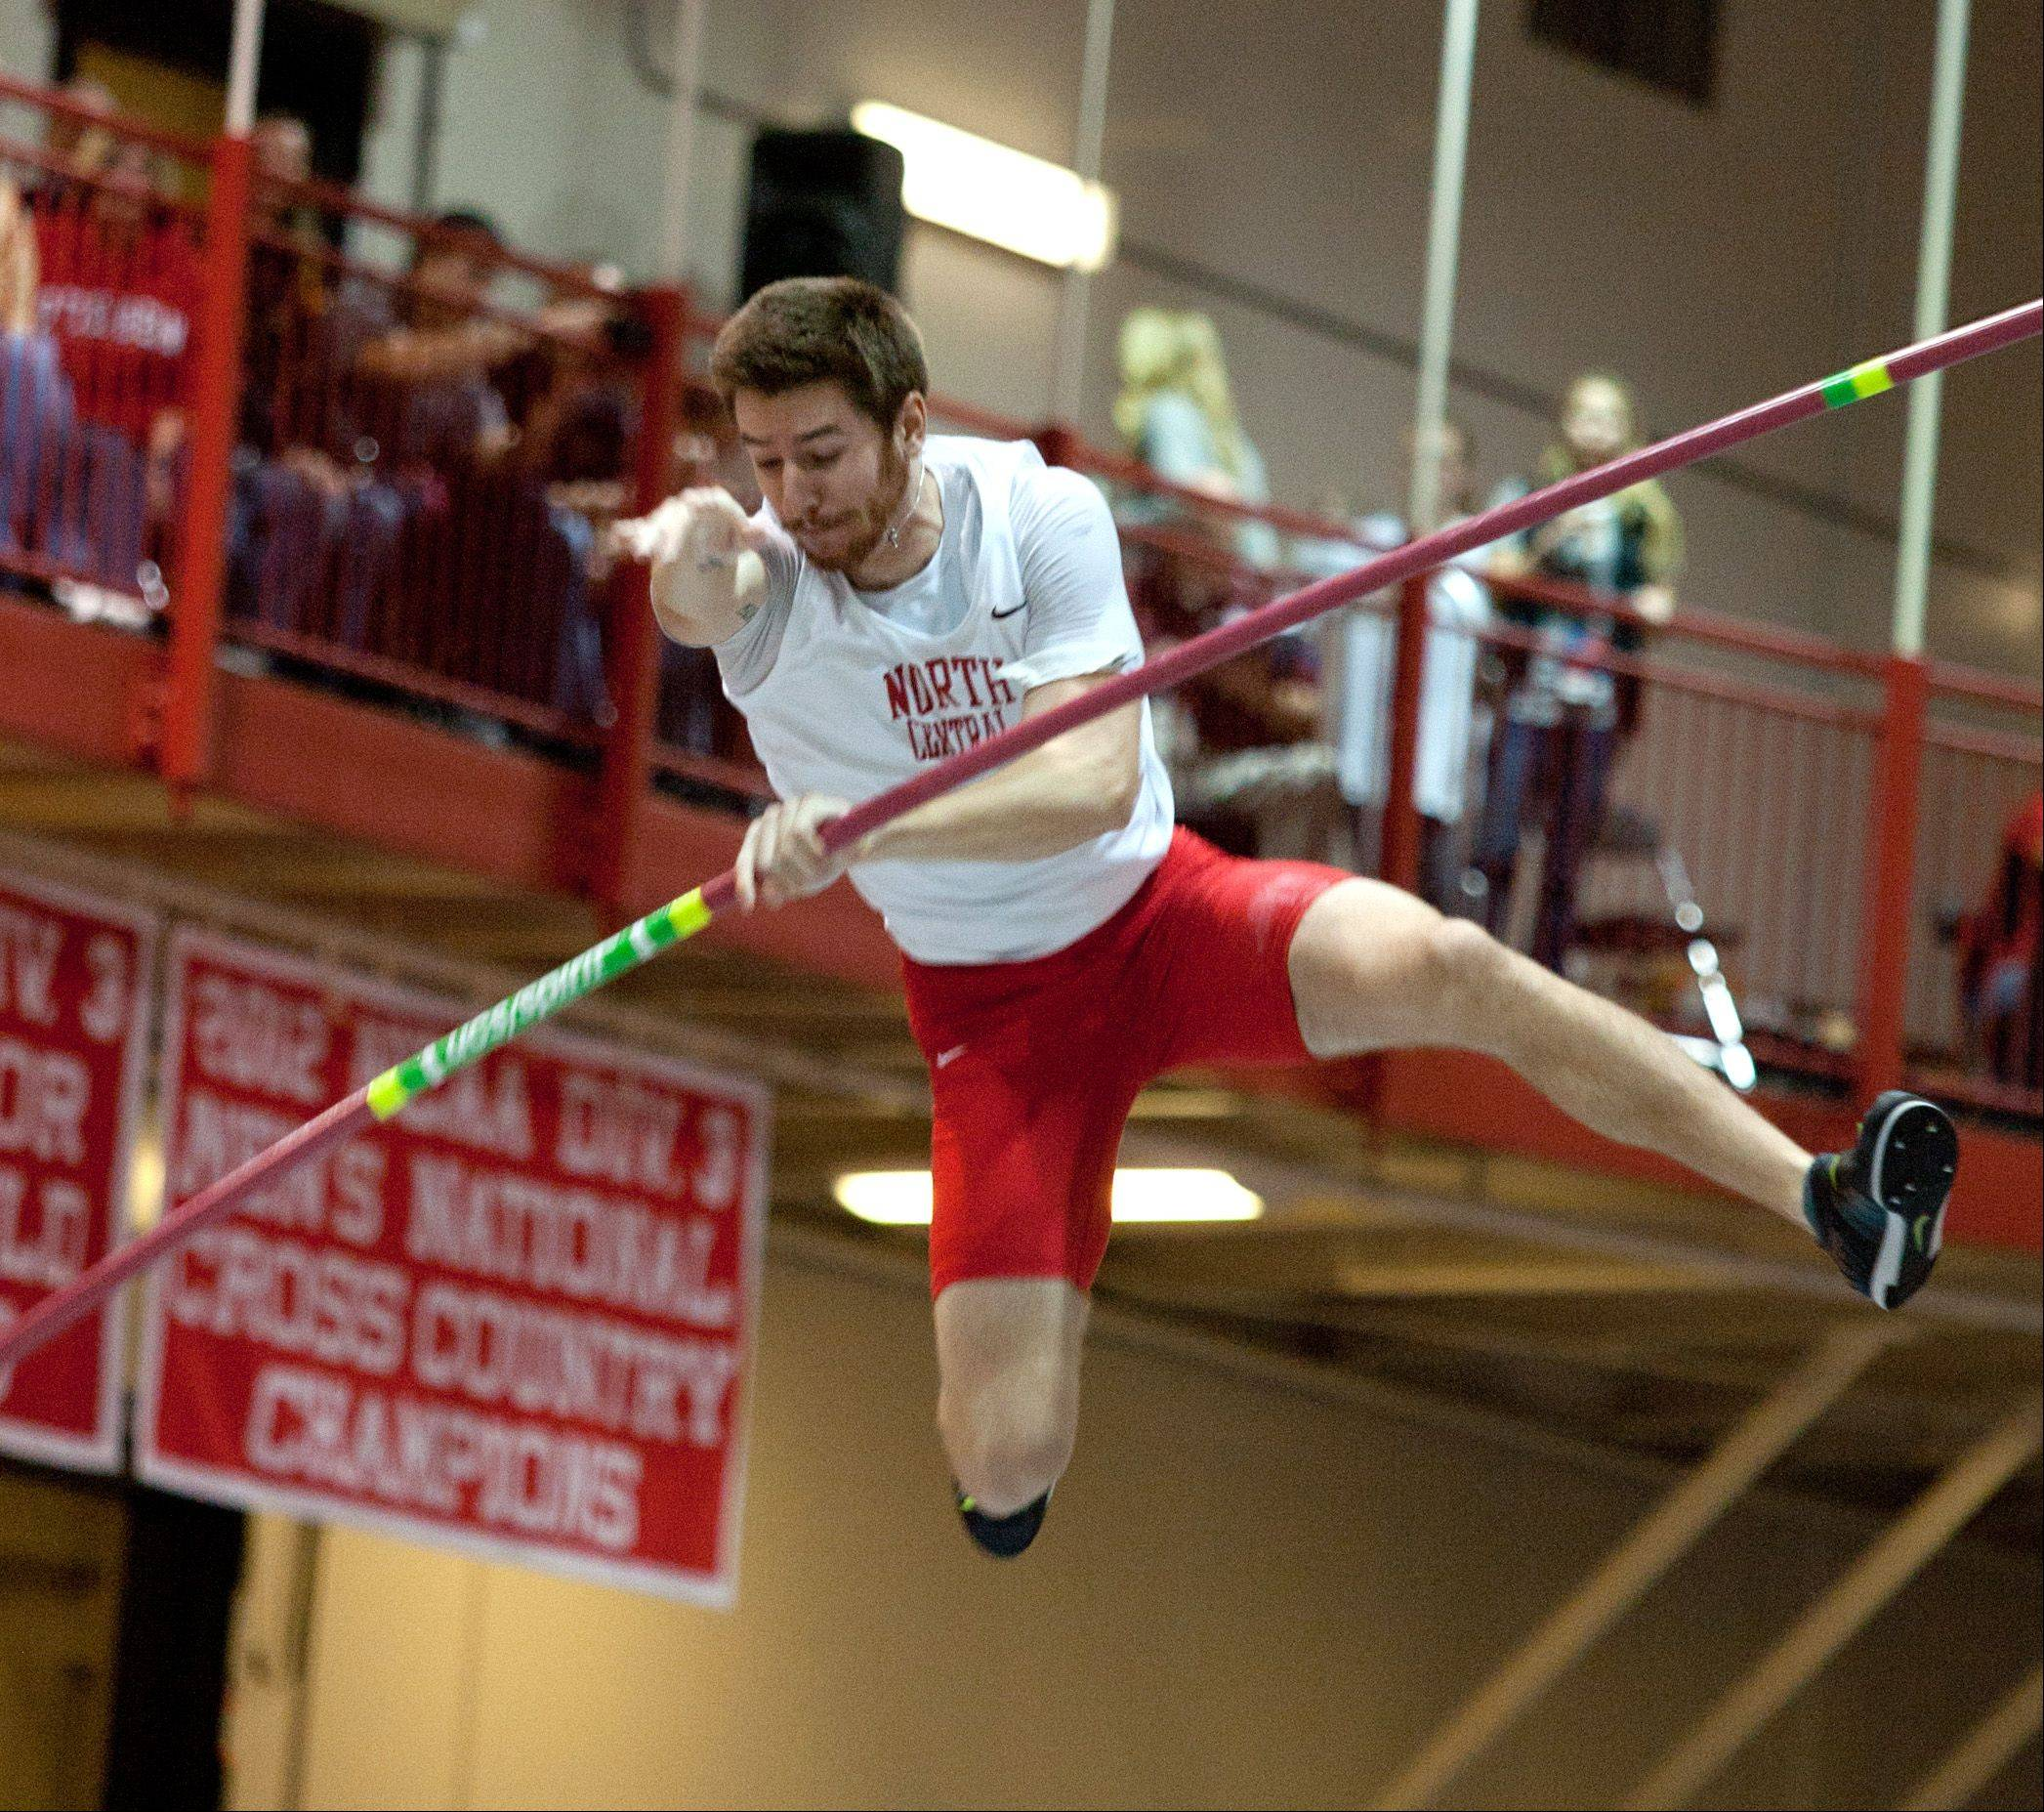 North Central College's Josh Winder holds the bar as he pole vaults March 8 during the NCAA Division III Indoor Track and Field Championships in Naperville. Winder, a former national champion pole vaulter, finished third.